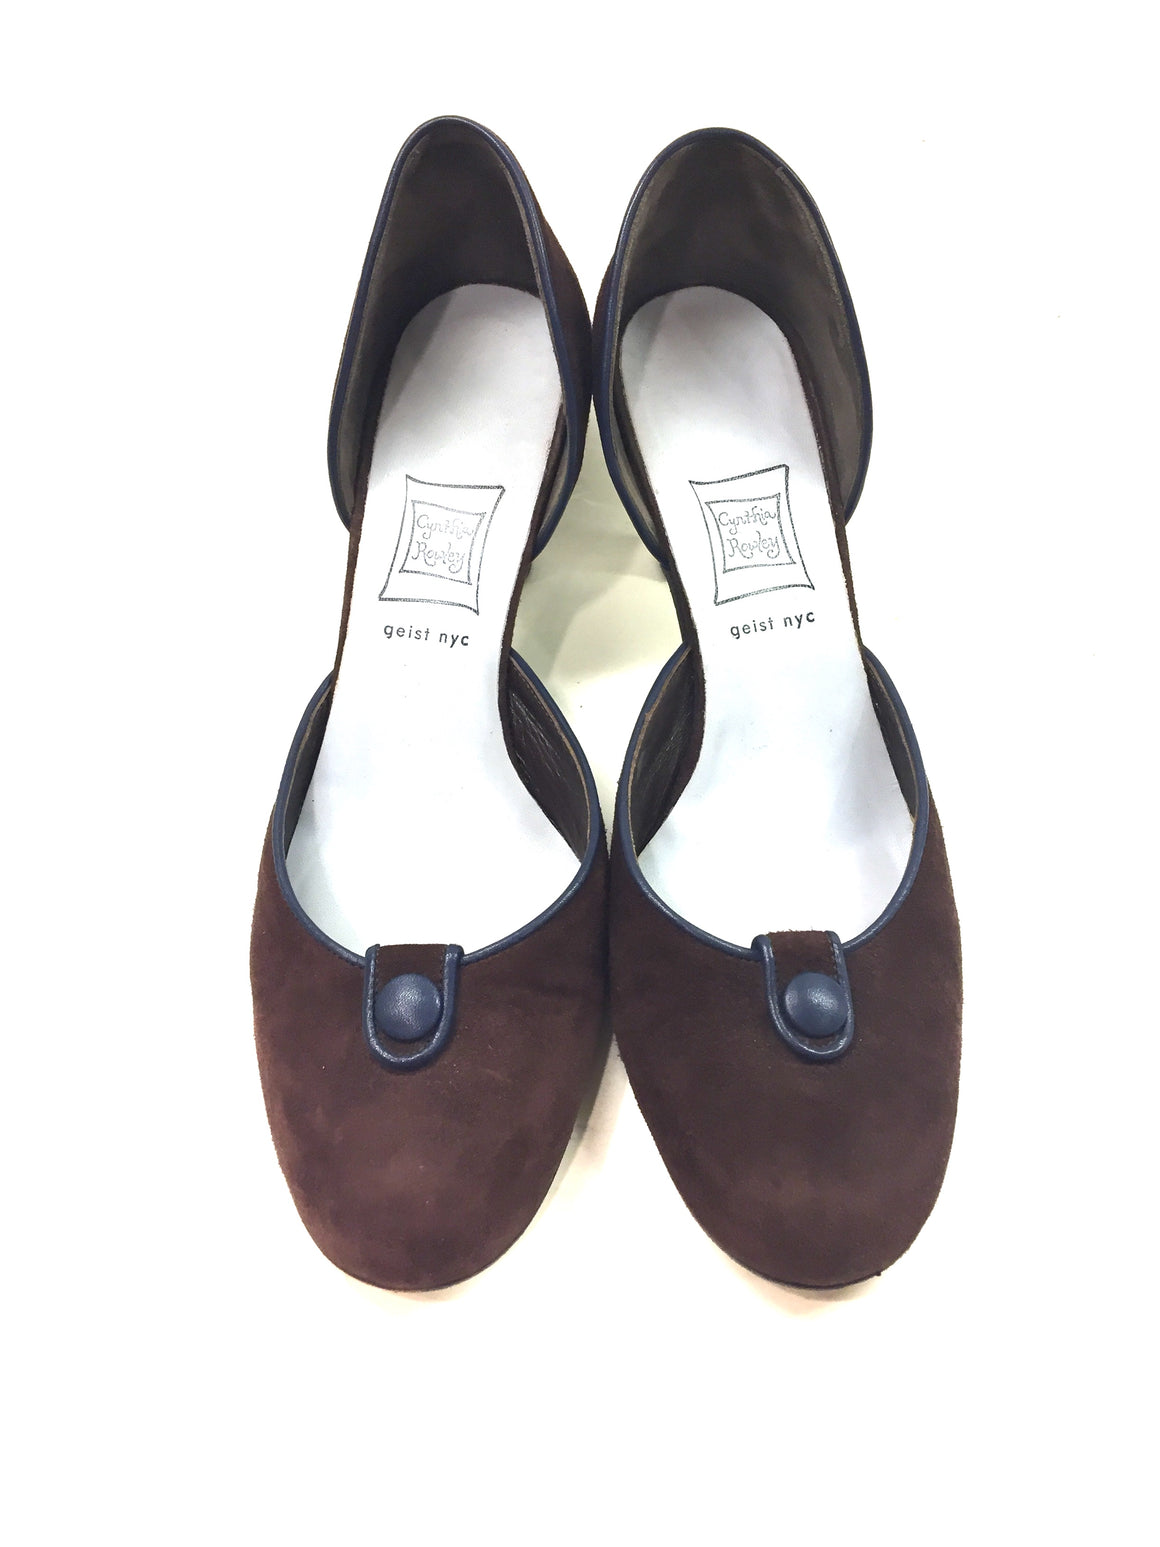 CYNTHIA ROWLEY Brown Suede Navy Leather Button & Trim D'Orsay Heel Pumps Sz8.5